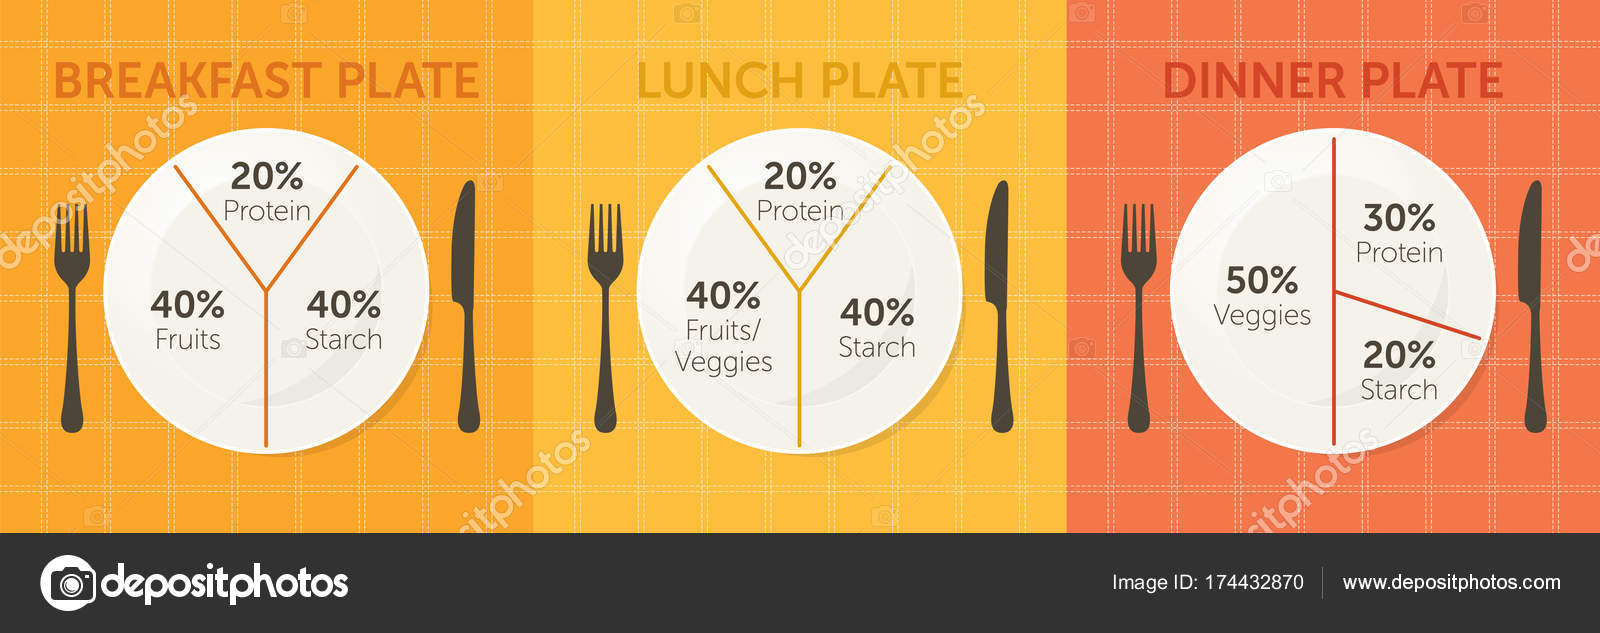 Healthy eating plate diagram stock vector moibalkon 174432870 healthy eating plate diagram stock vector pooptronica Gallery